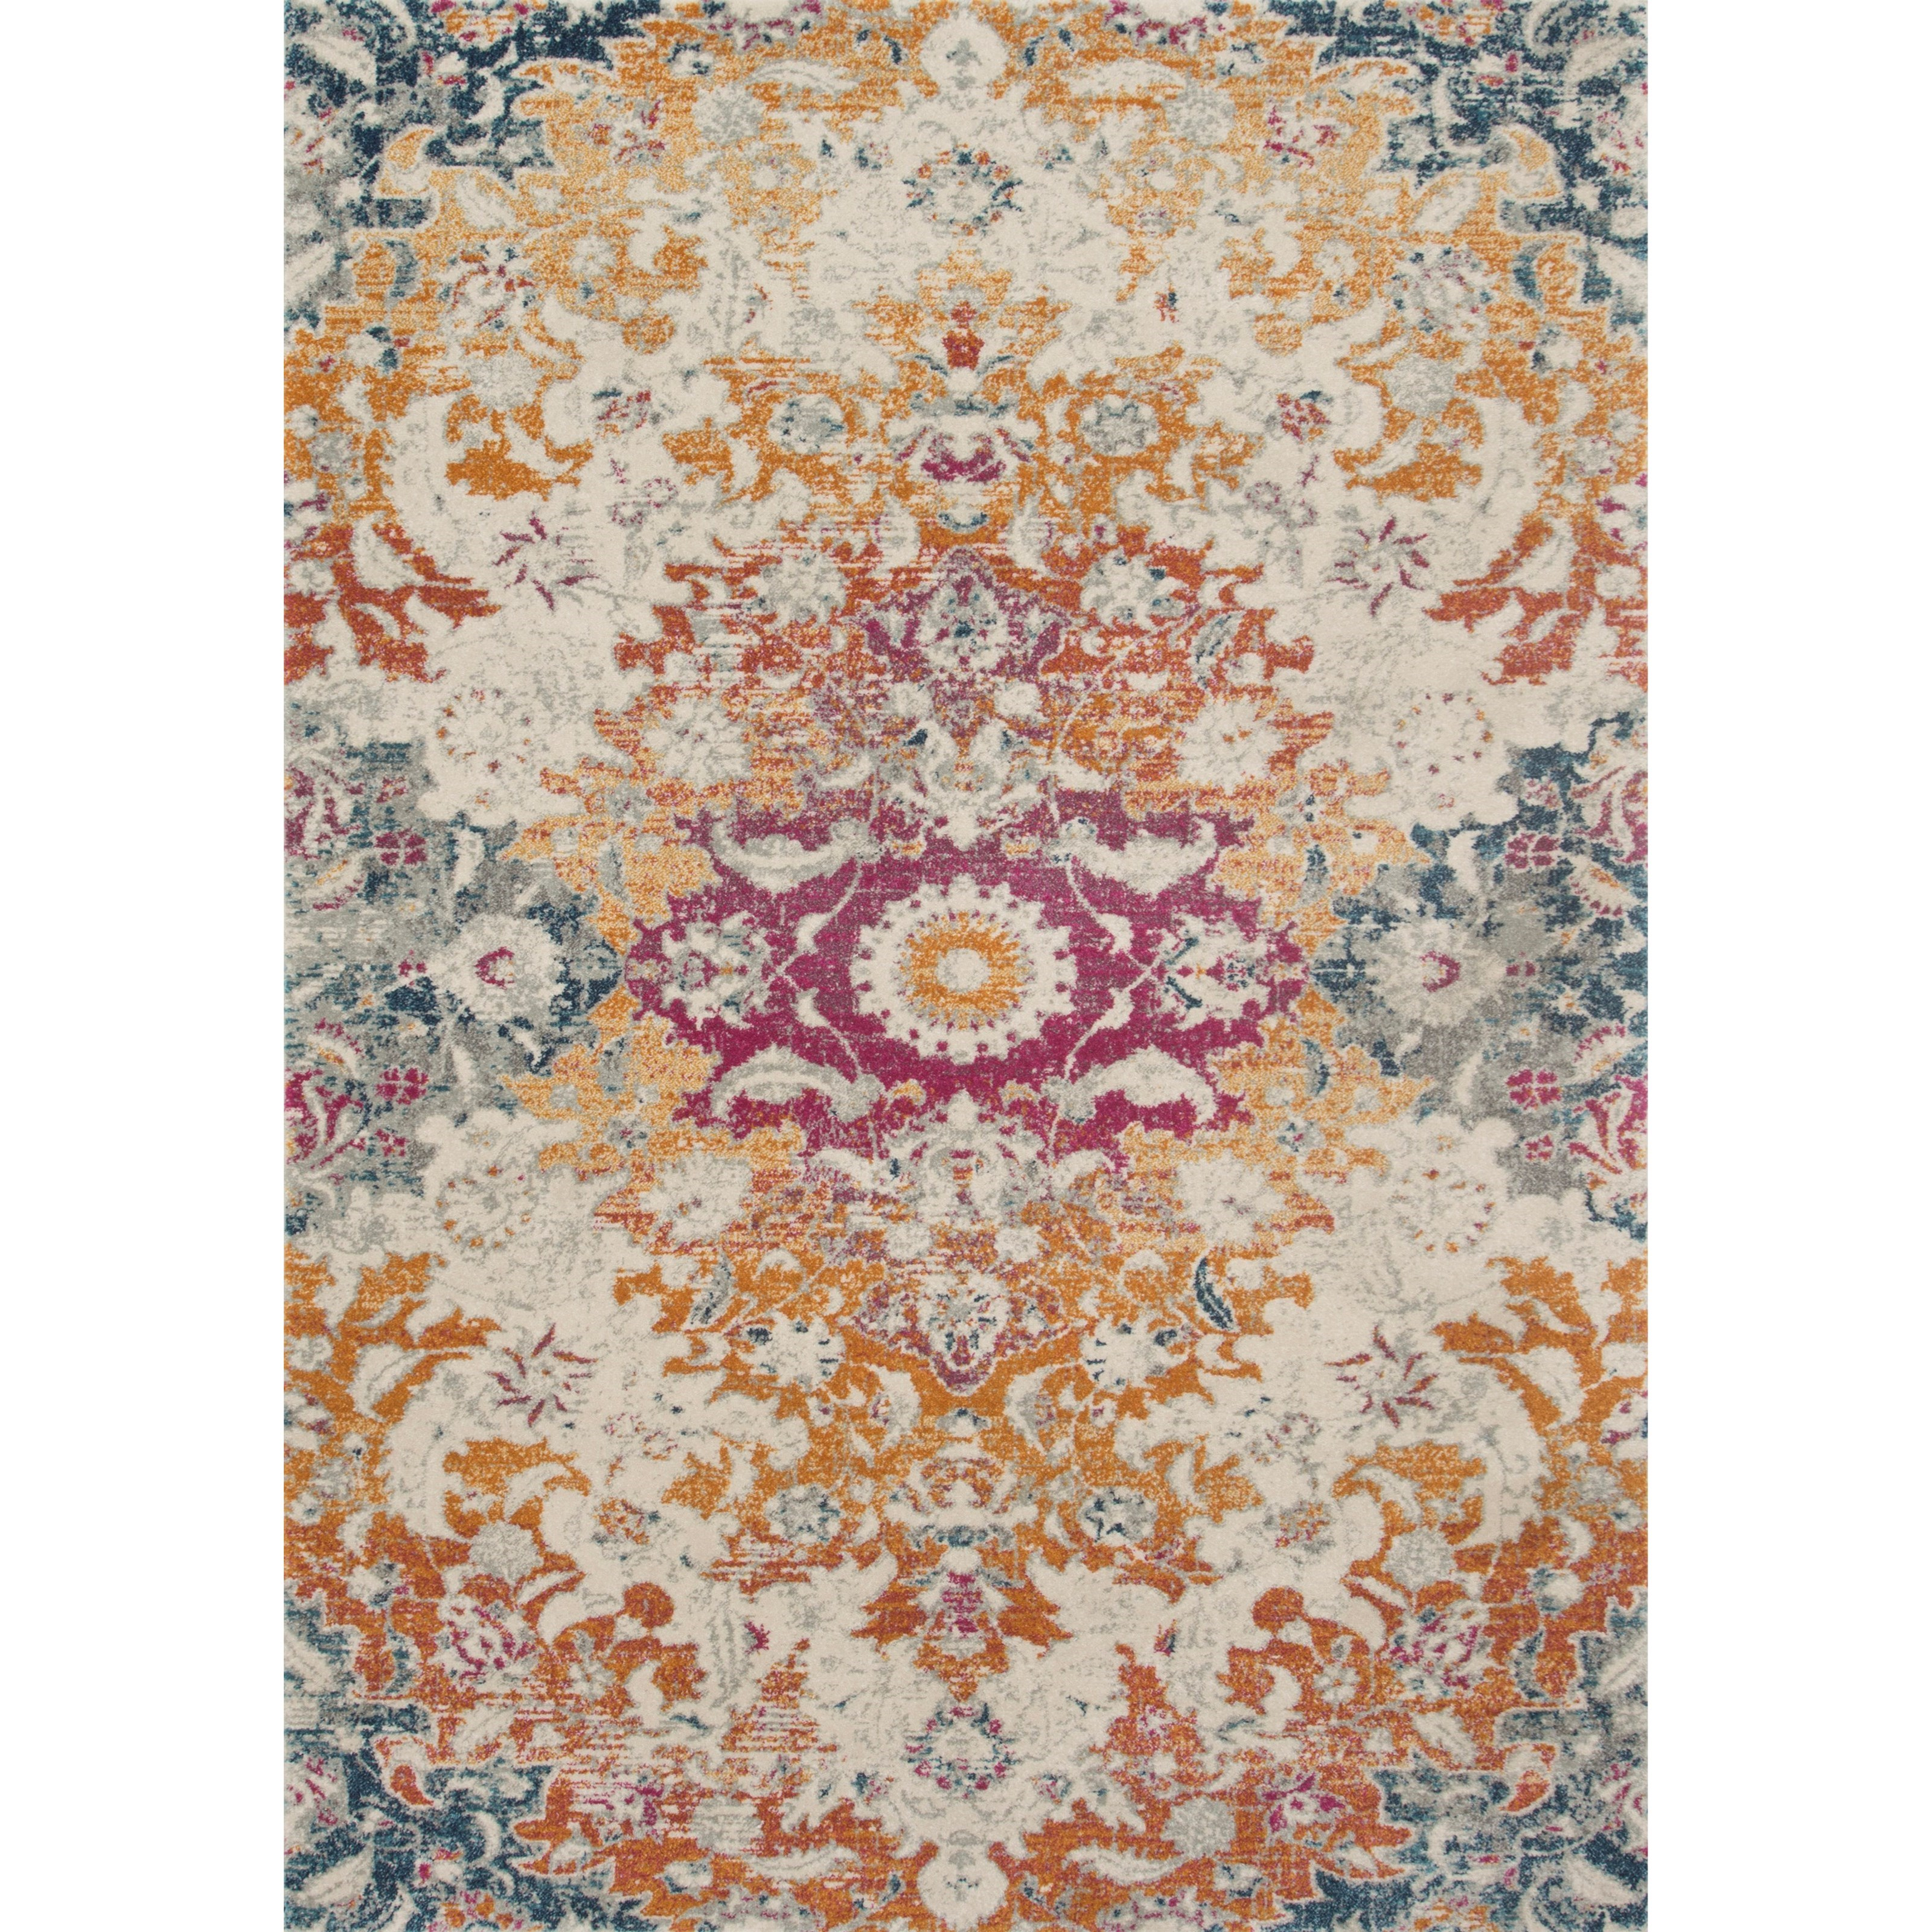 """Zehla 9'0"""" x 12'2"""" Ivory / Fiesta Rug by Loloi Rugs at Virginia Furniture Market"""